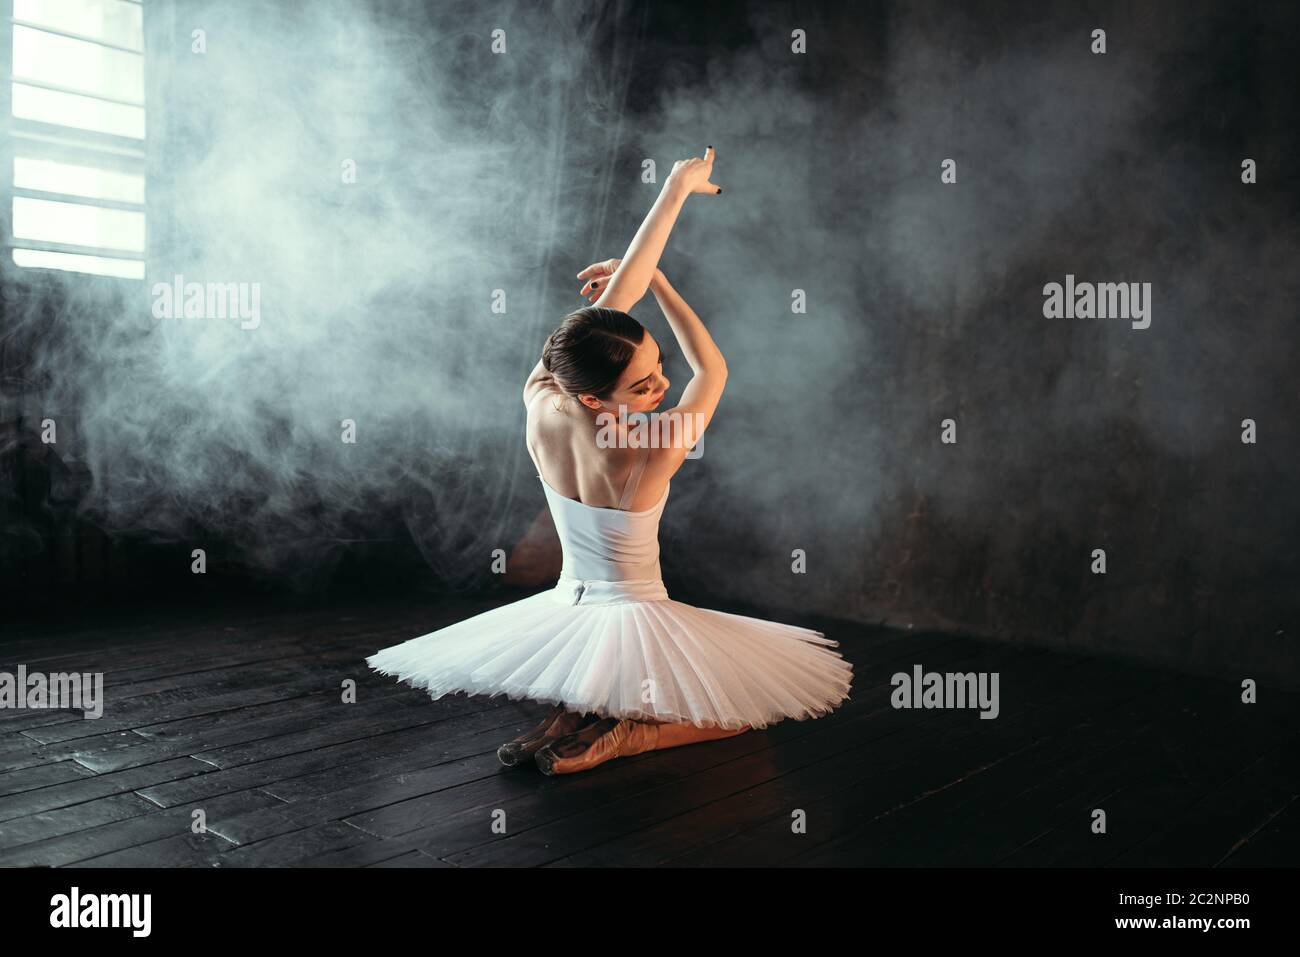 hårkam dirigent Kropp  Page 2 - Graceful Ballerina Sitting On Floor High Resolution Stock  Photography and Images - Alamy